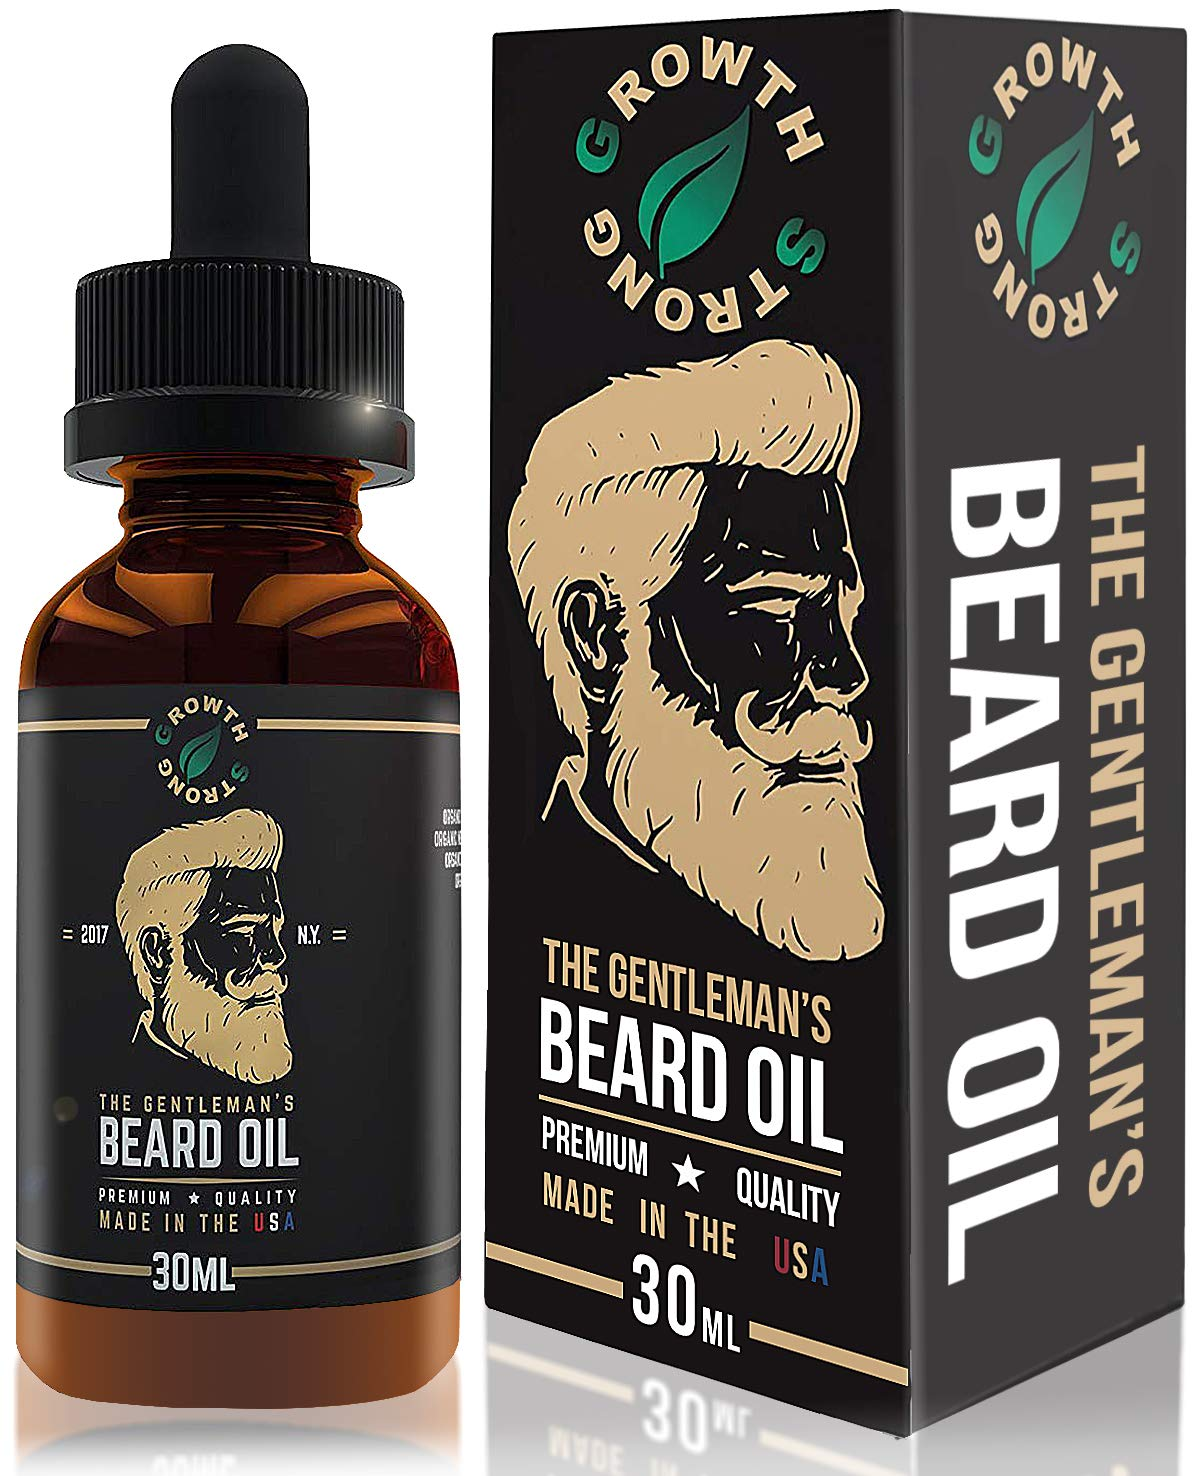 Organic Beard Oil Growth, Hand Crafted in the USA, 100% Natural Best Men's Beard Oil. Unscented Leave-in Conditioner, 1oz Balm. Beard and Mustache Hair Softener by Growth Strong.